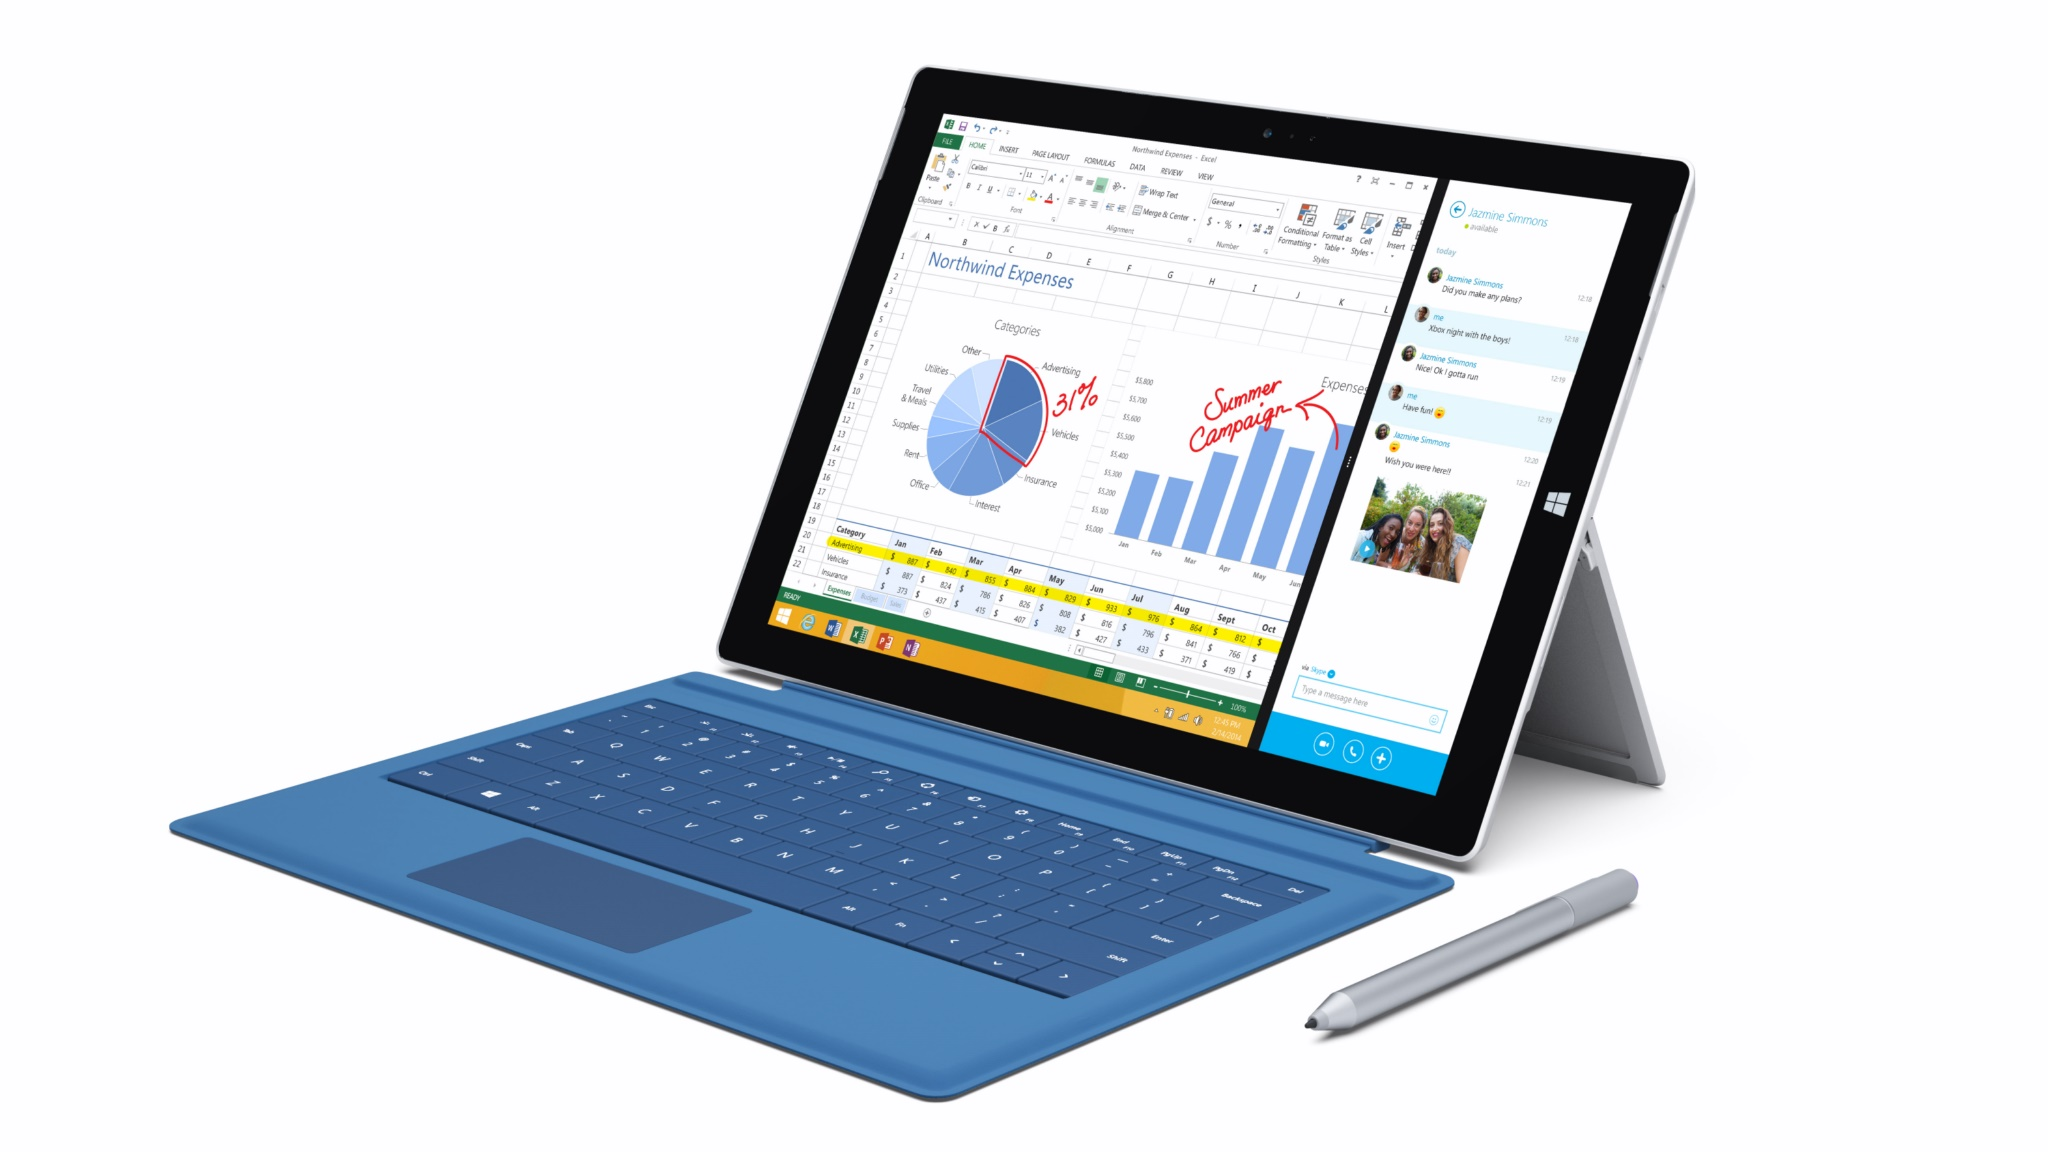 microsoft surface Surface Pro 3 tablet Windows